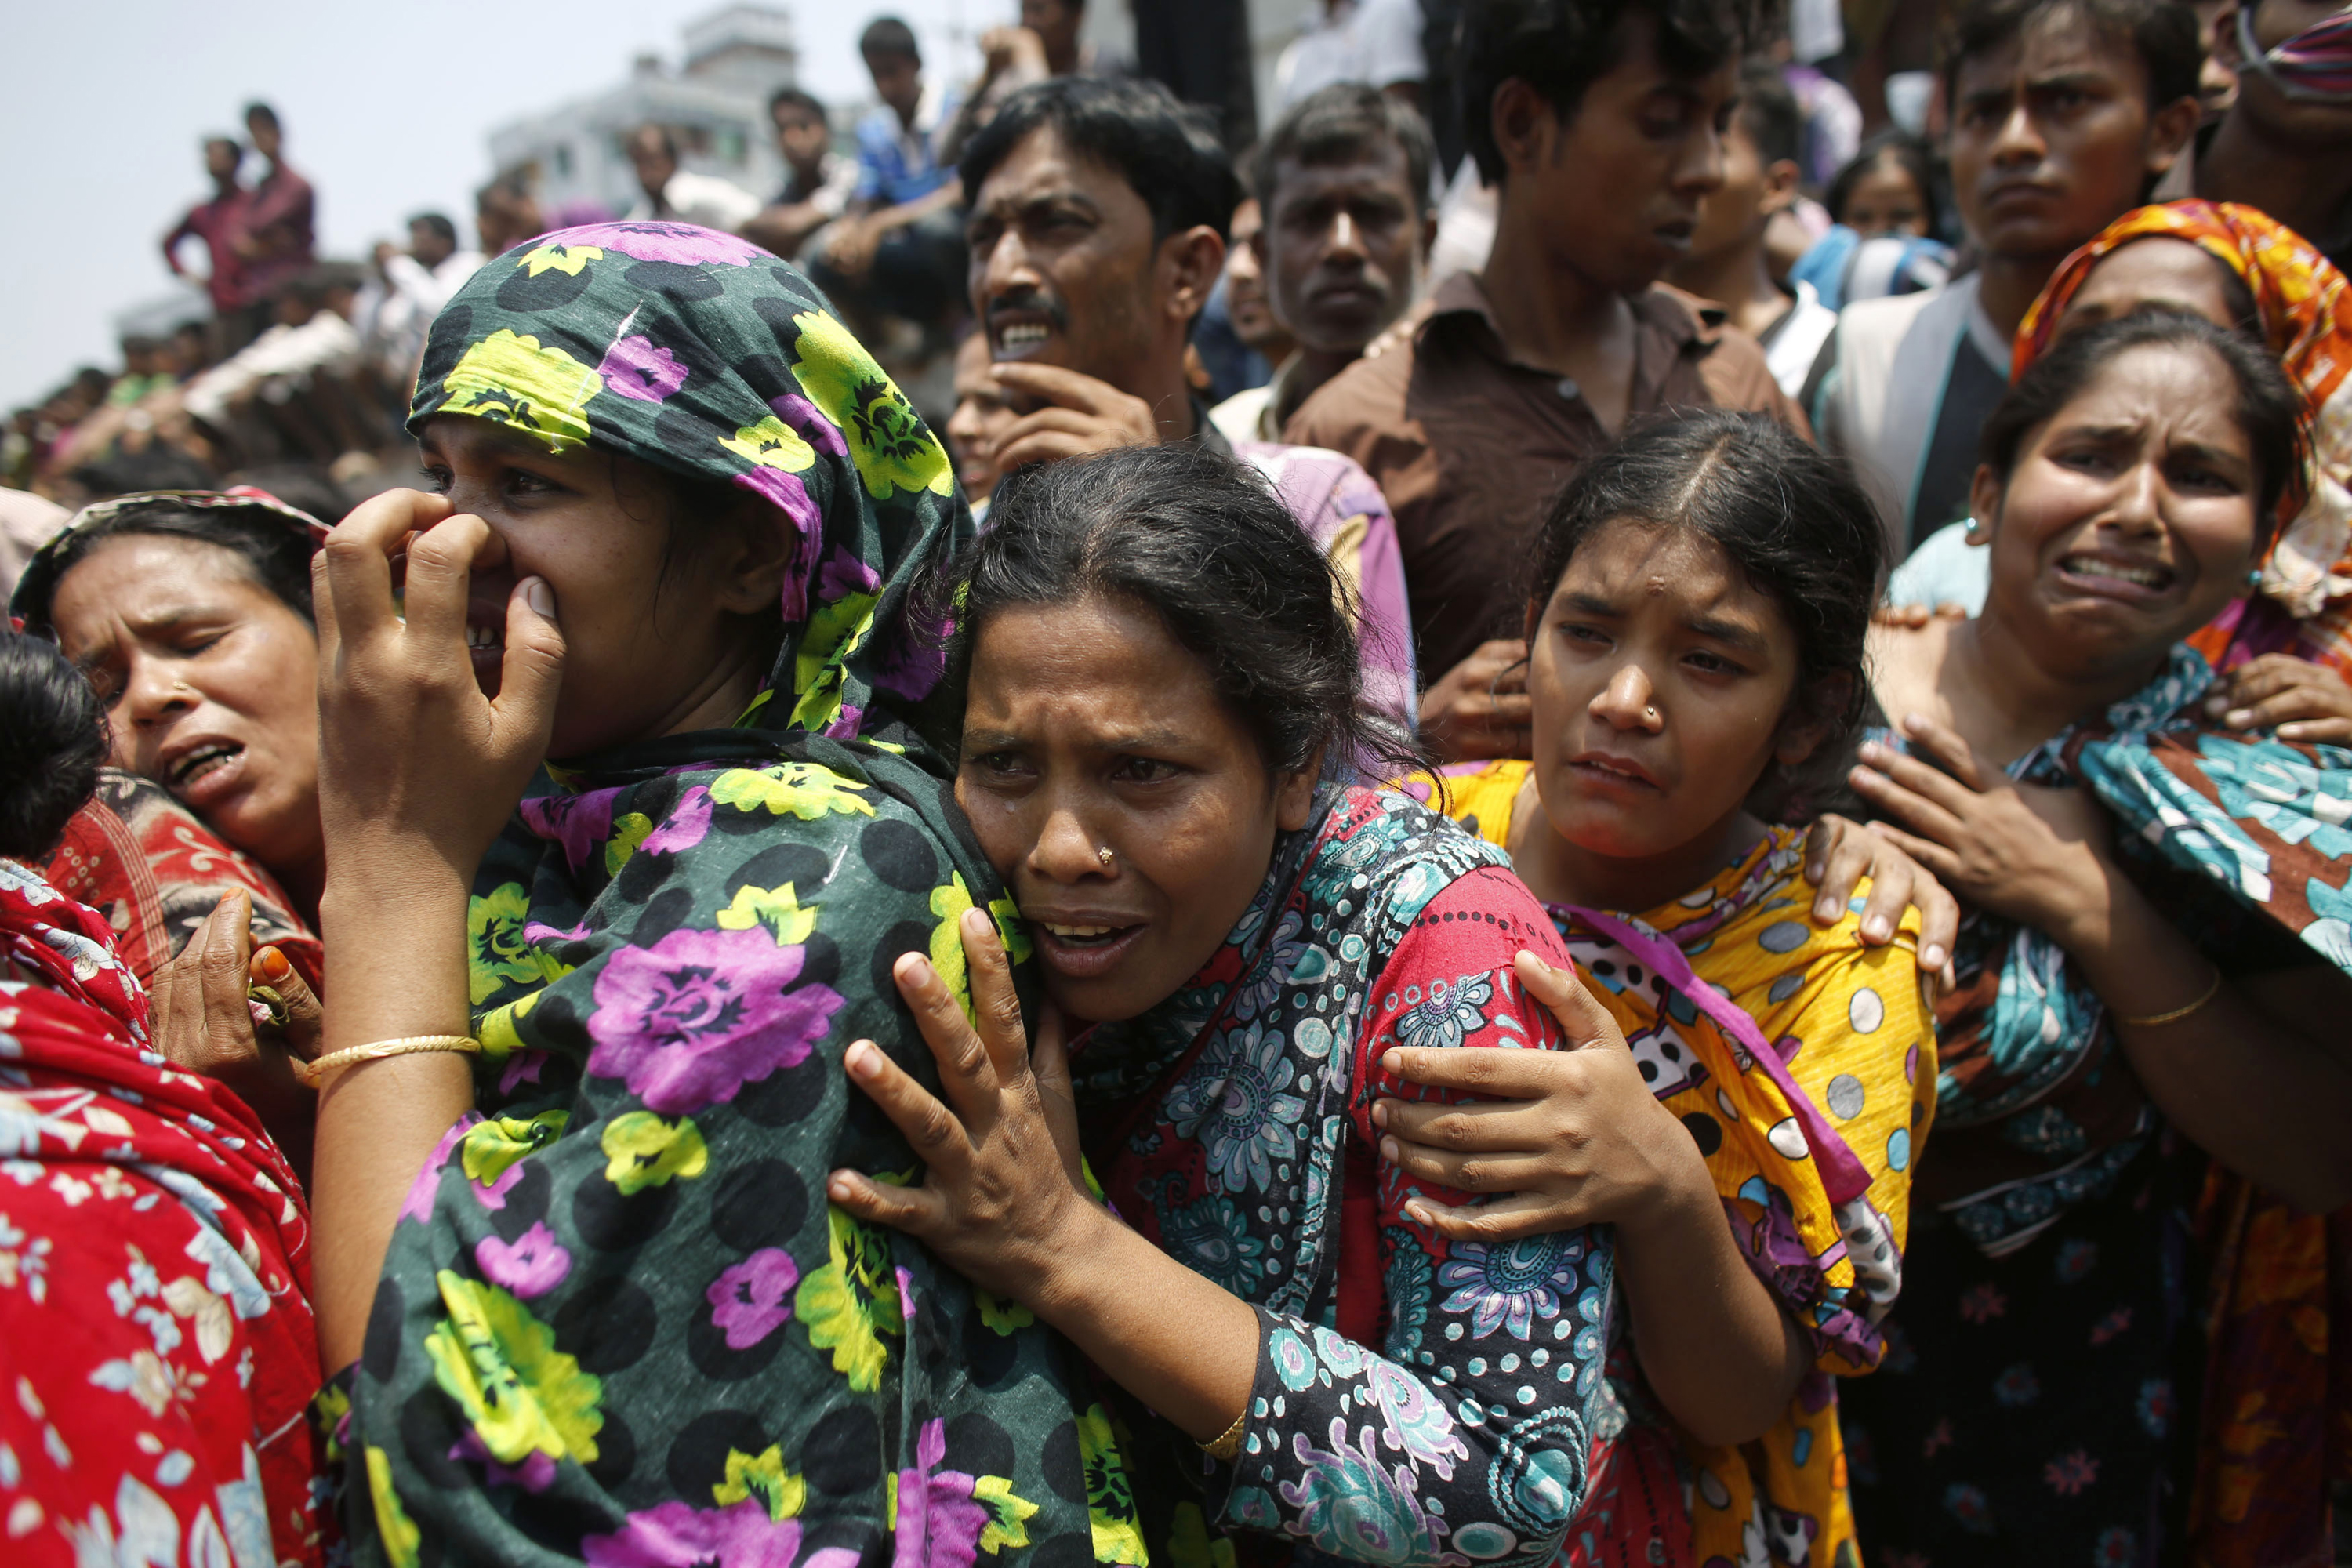 People mourn for relatives trapped inside the rubble of the collapsed Rana Plaza building.